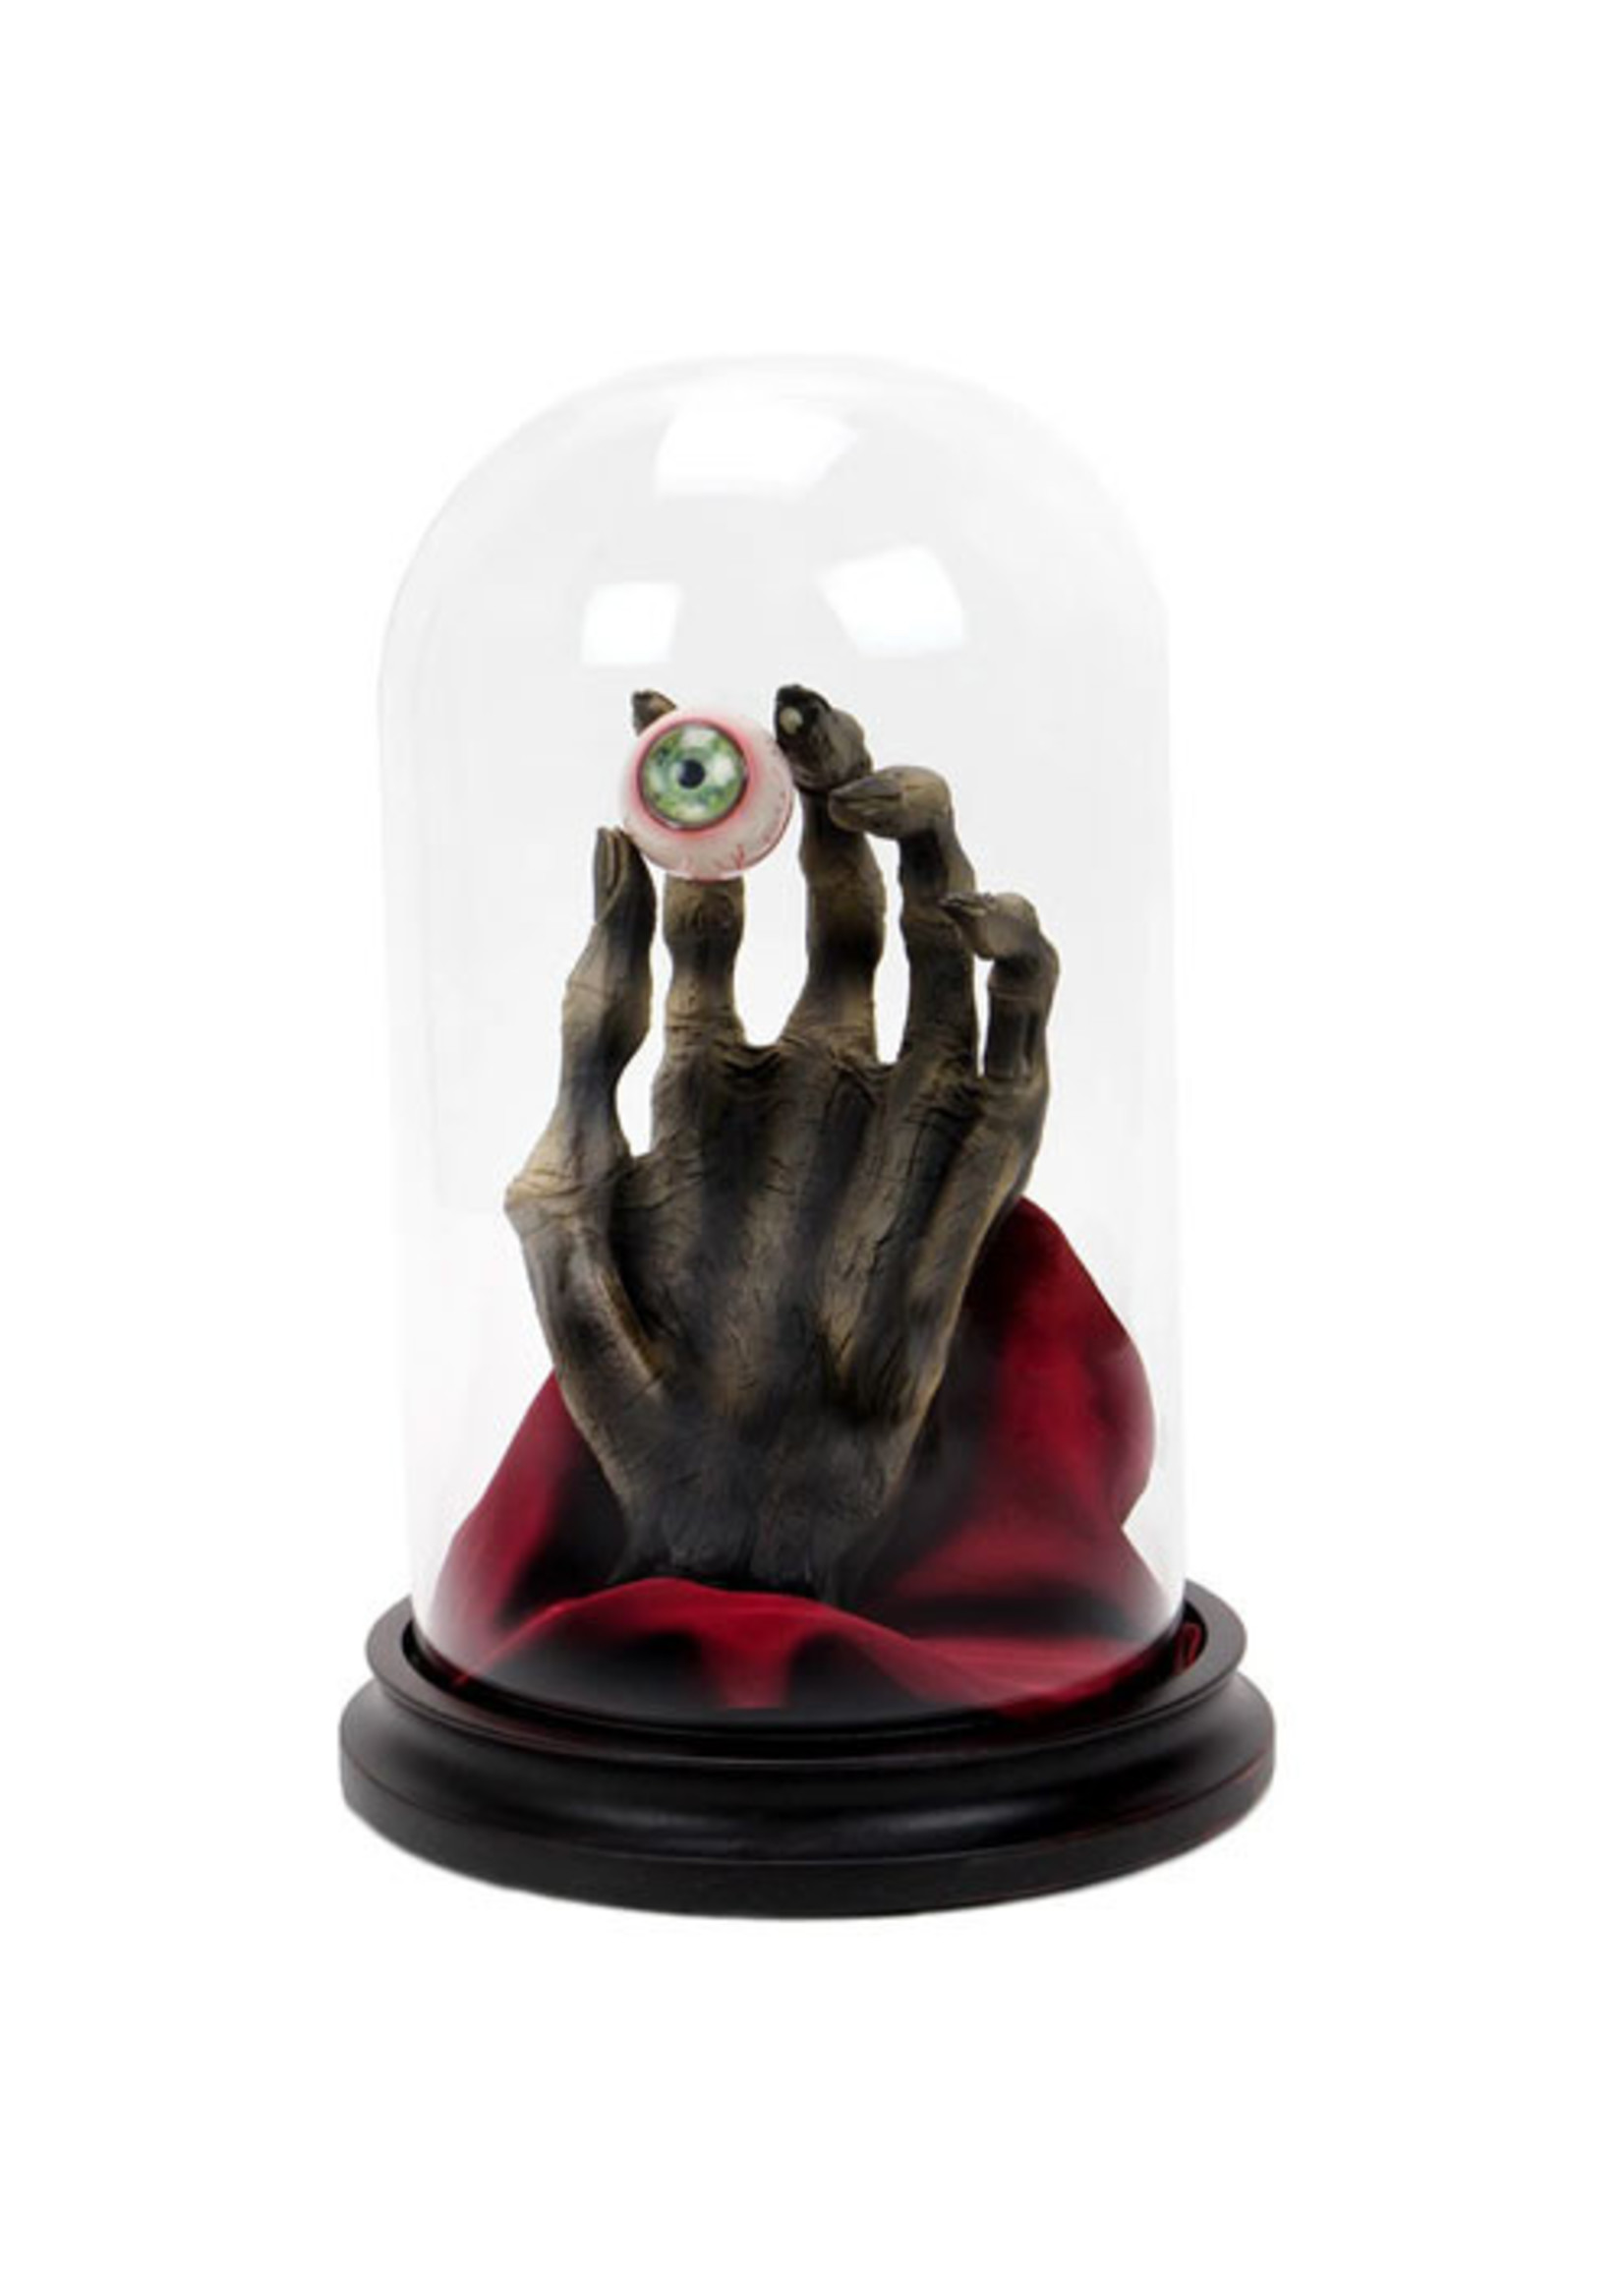 Dungeons & Dragons Icons of the Realms: Eye and Hand of Vecna